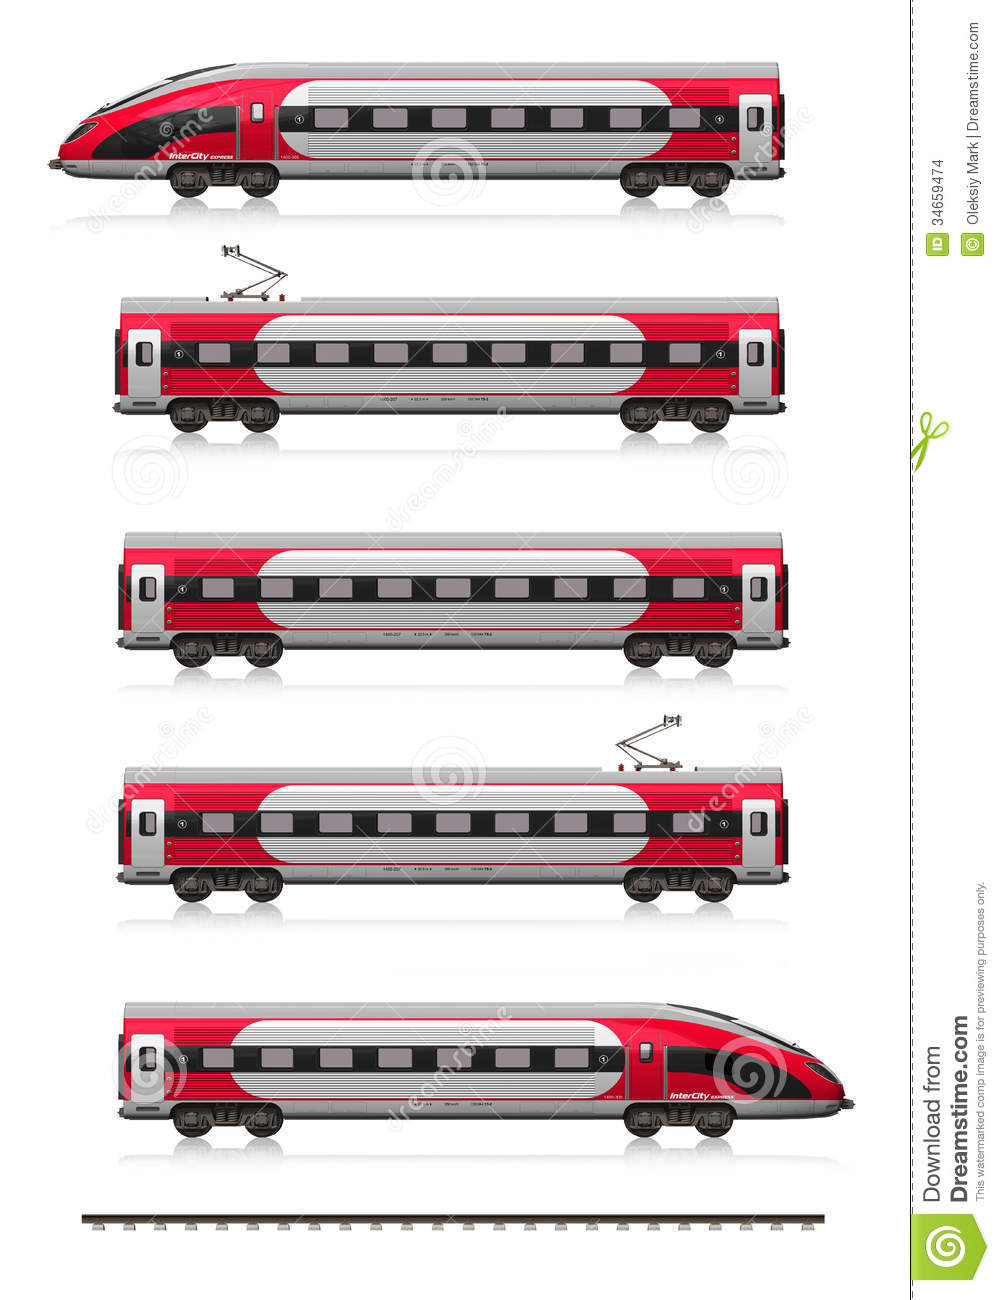 Modern High Speed Train Set Stock Images - Image: 34659474